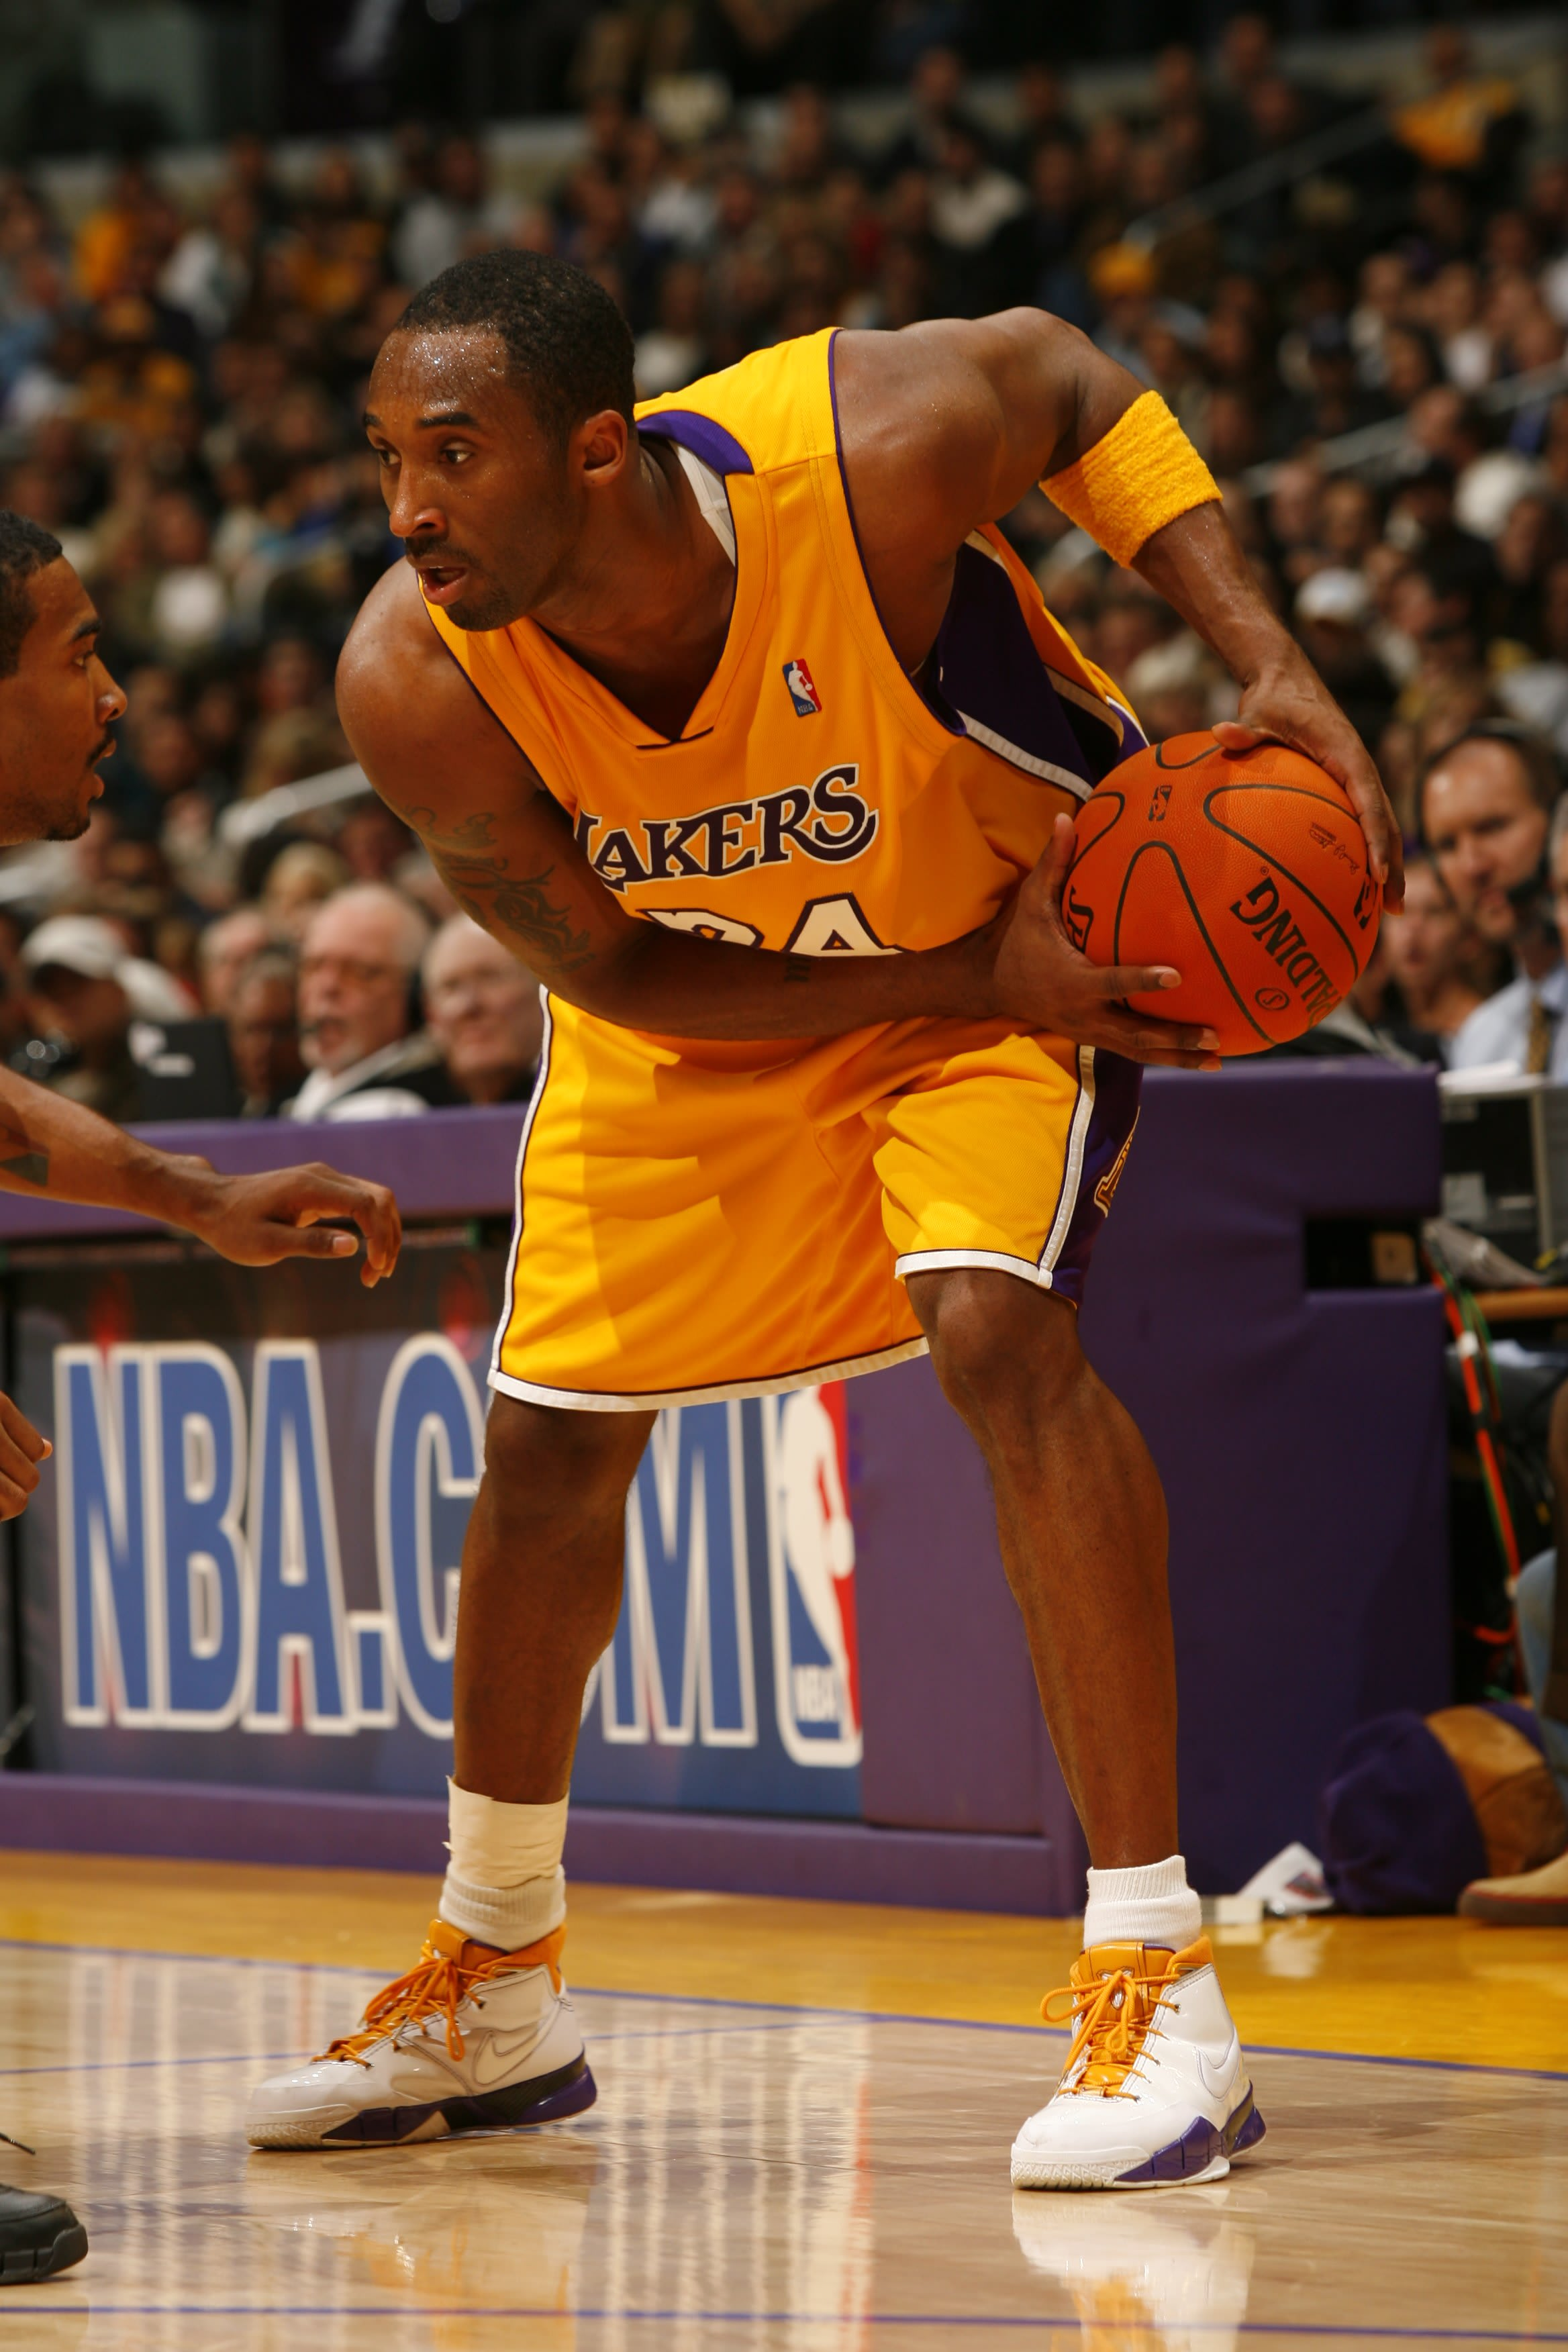 Kobe Bryant vs. Houston Rockets December 15, 2006